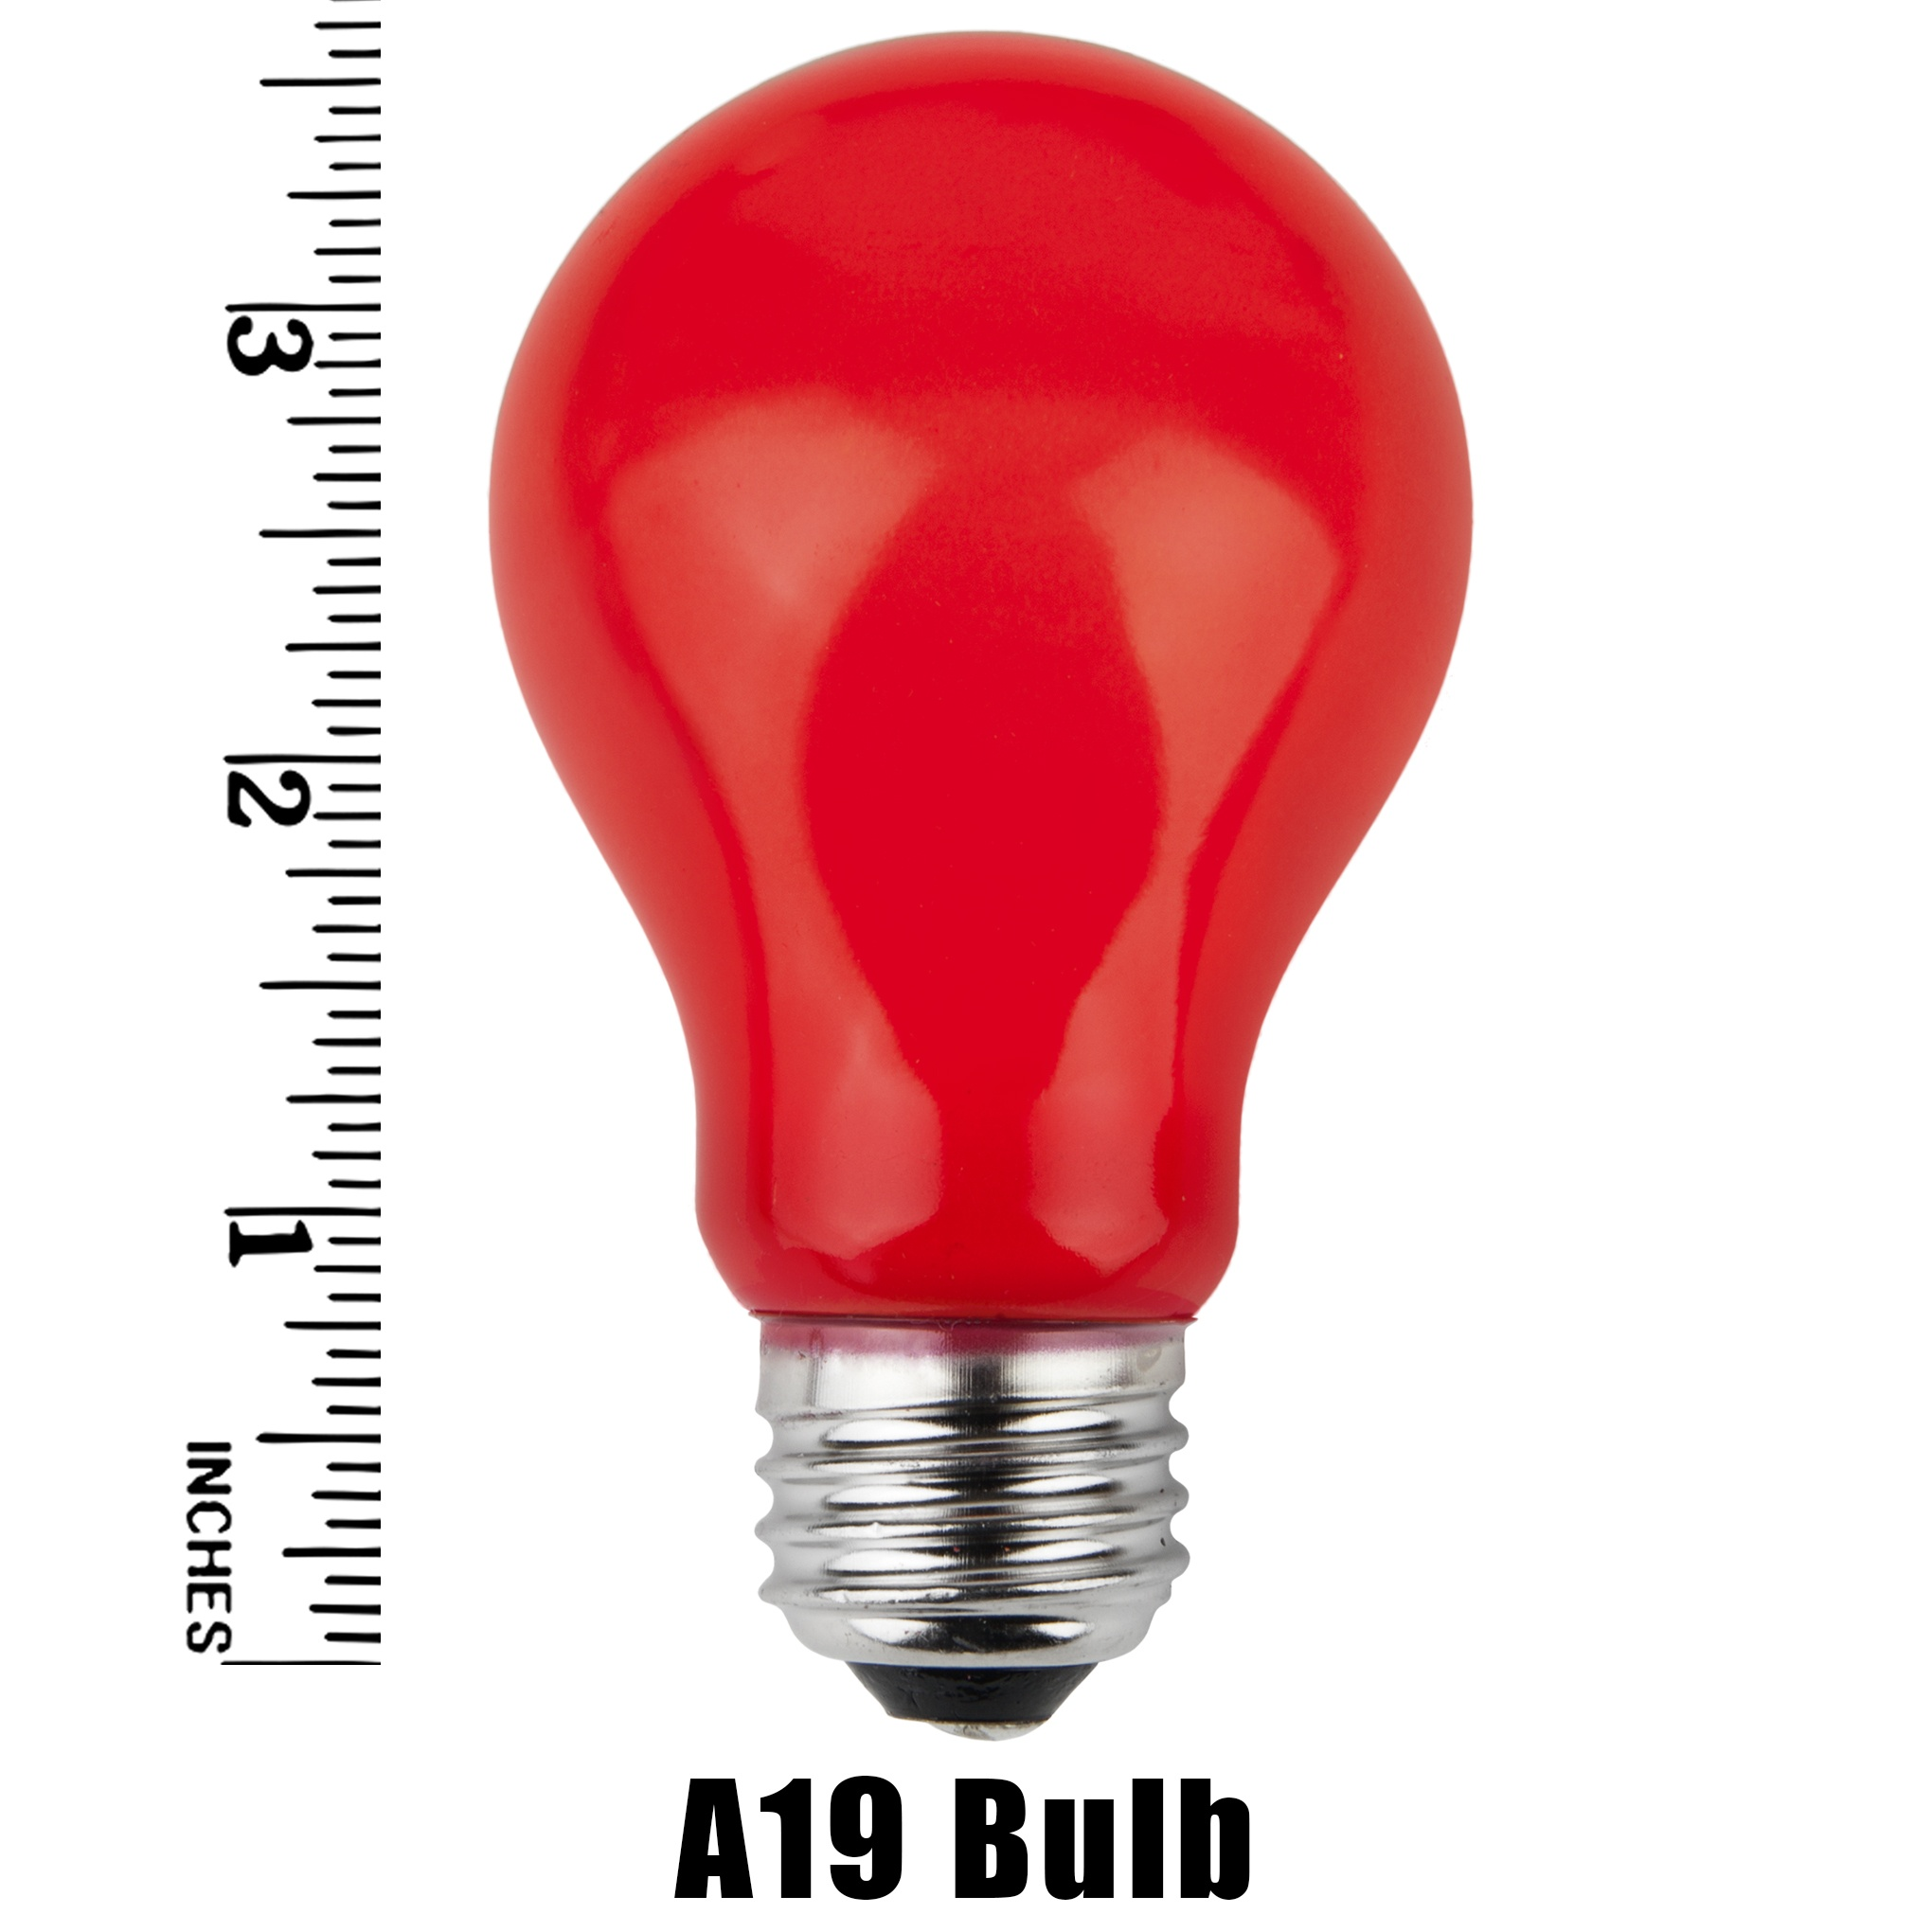 A19 Red Opaque Incandescent Bulb Measurement